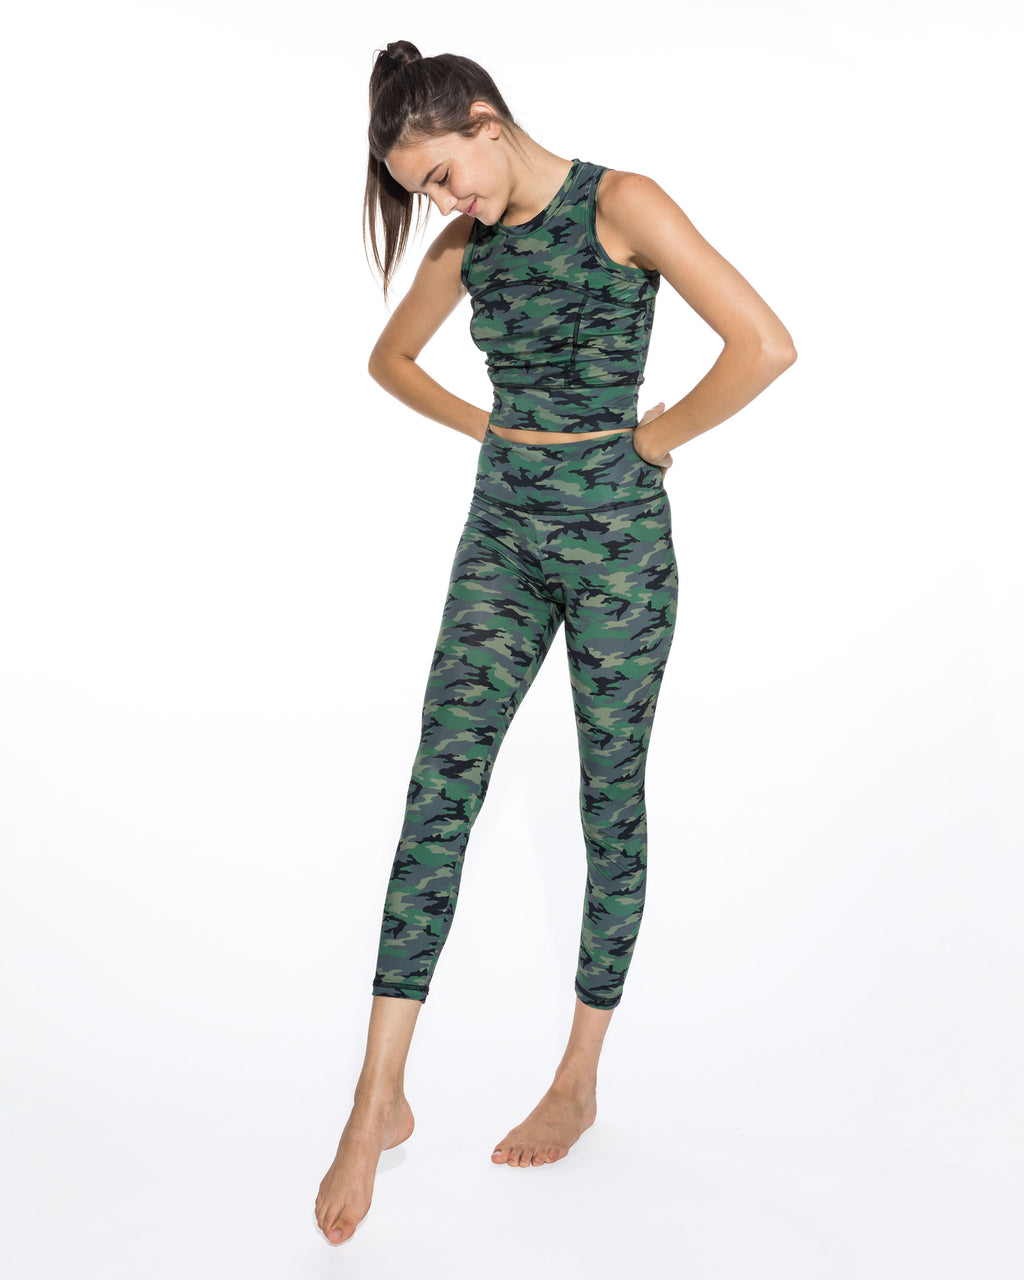 CP18602 - CAMO LEGGINGS - bottoms - pants - Our new camo leggings easily transition from lounge to streetwear. These lightweight leggings are flexible, soft and come in a camo blush or camo green colorway. These high wasit pants hit just at the ankle. Add 1 line break Stylist tip: Pair with the matching crop top and a jean jacket.